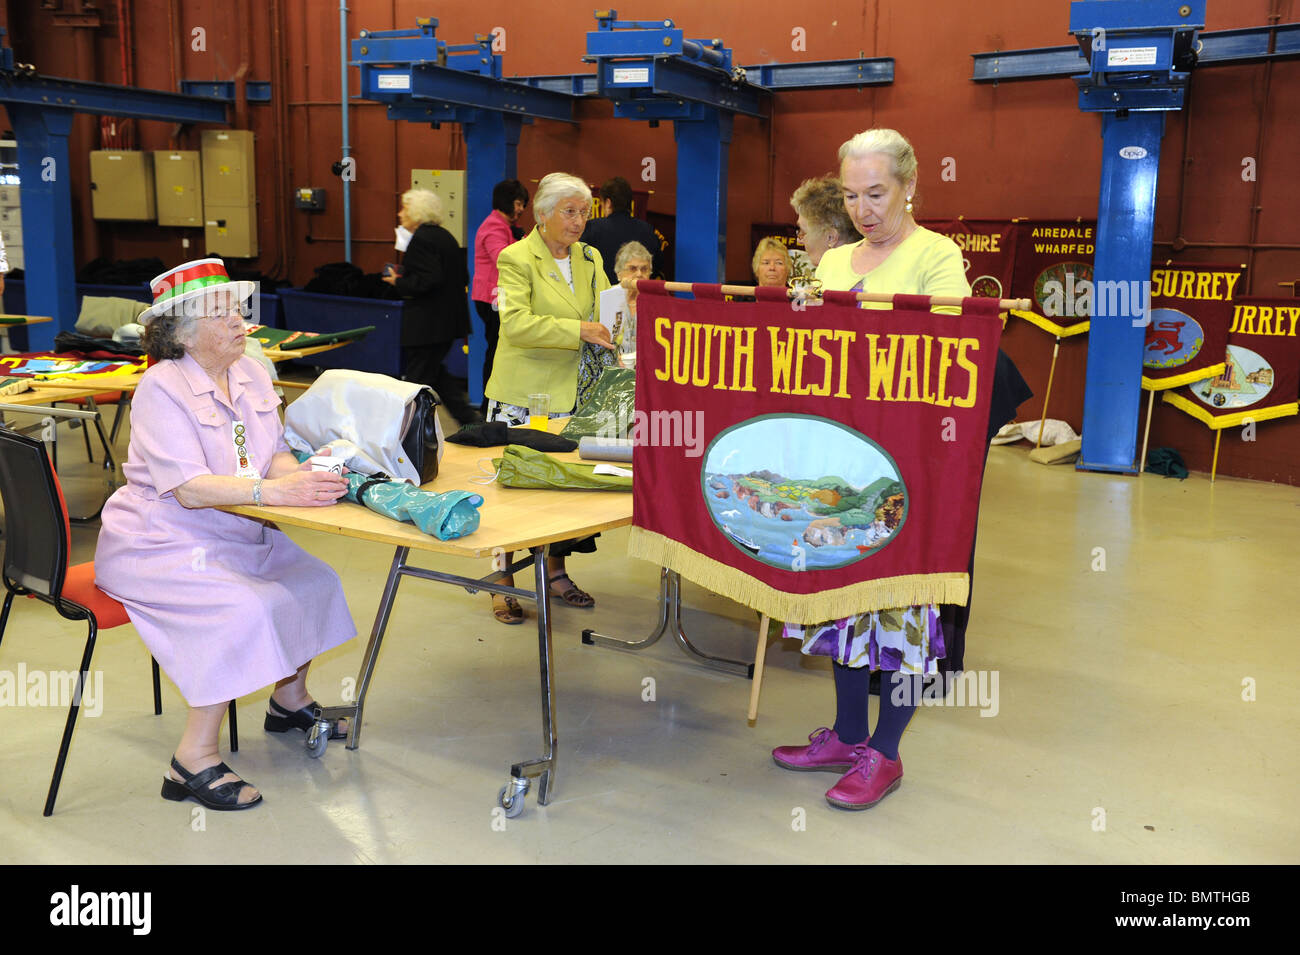 Members of the Townswomen's Guild preparing for the parade of banners at their annual conference - Stock Image